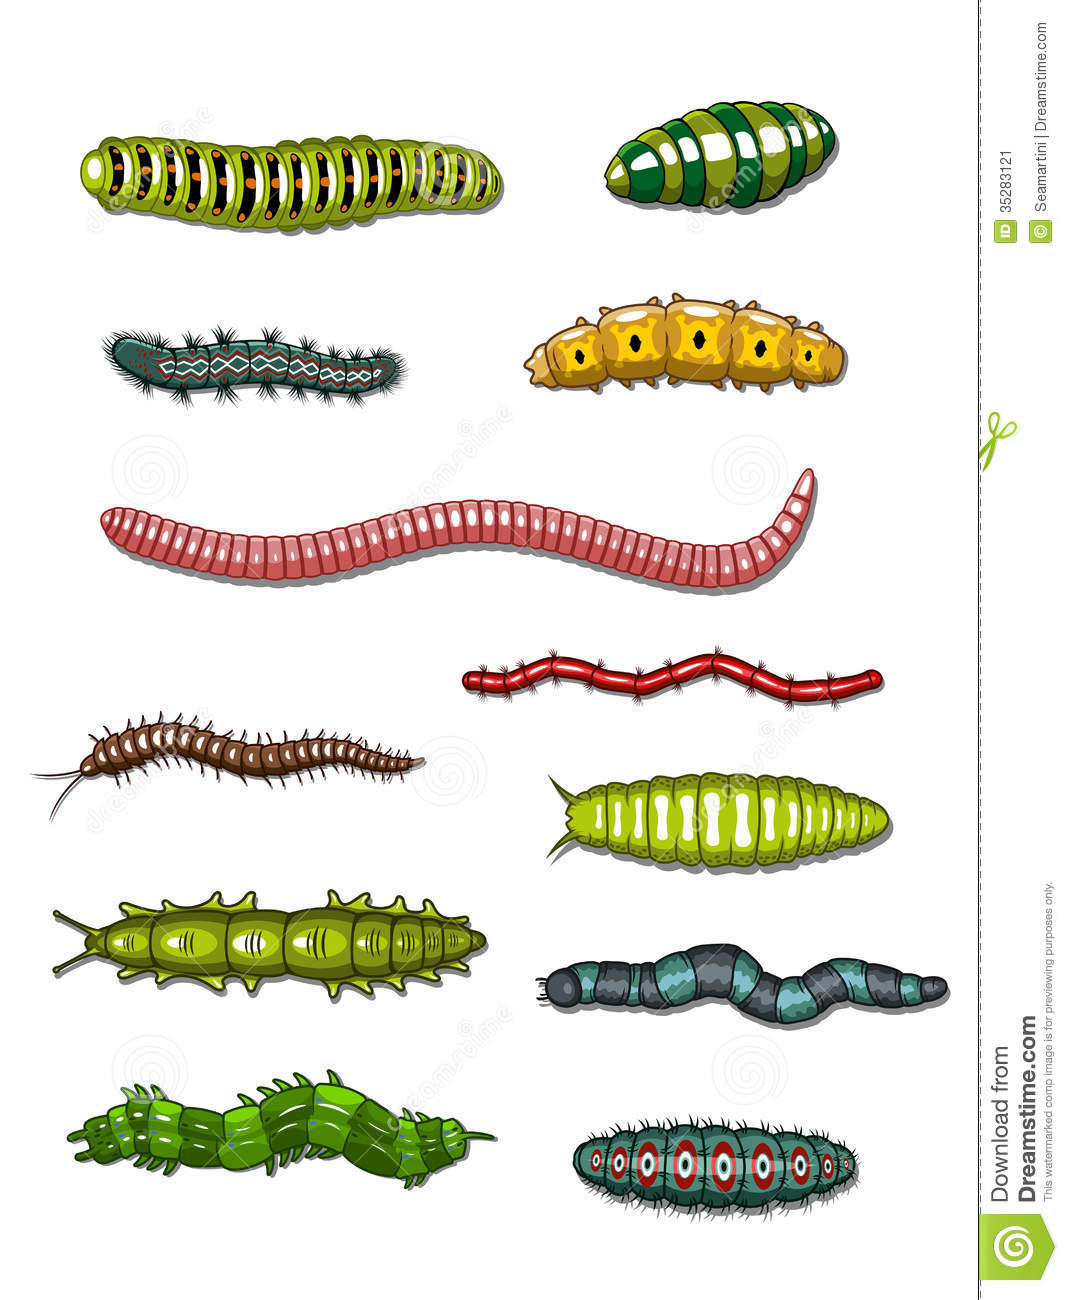 Caterpillars And Worms Stock Vector Illustration Of